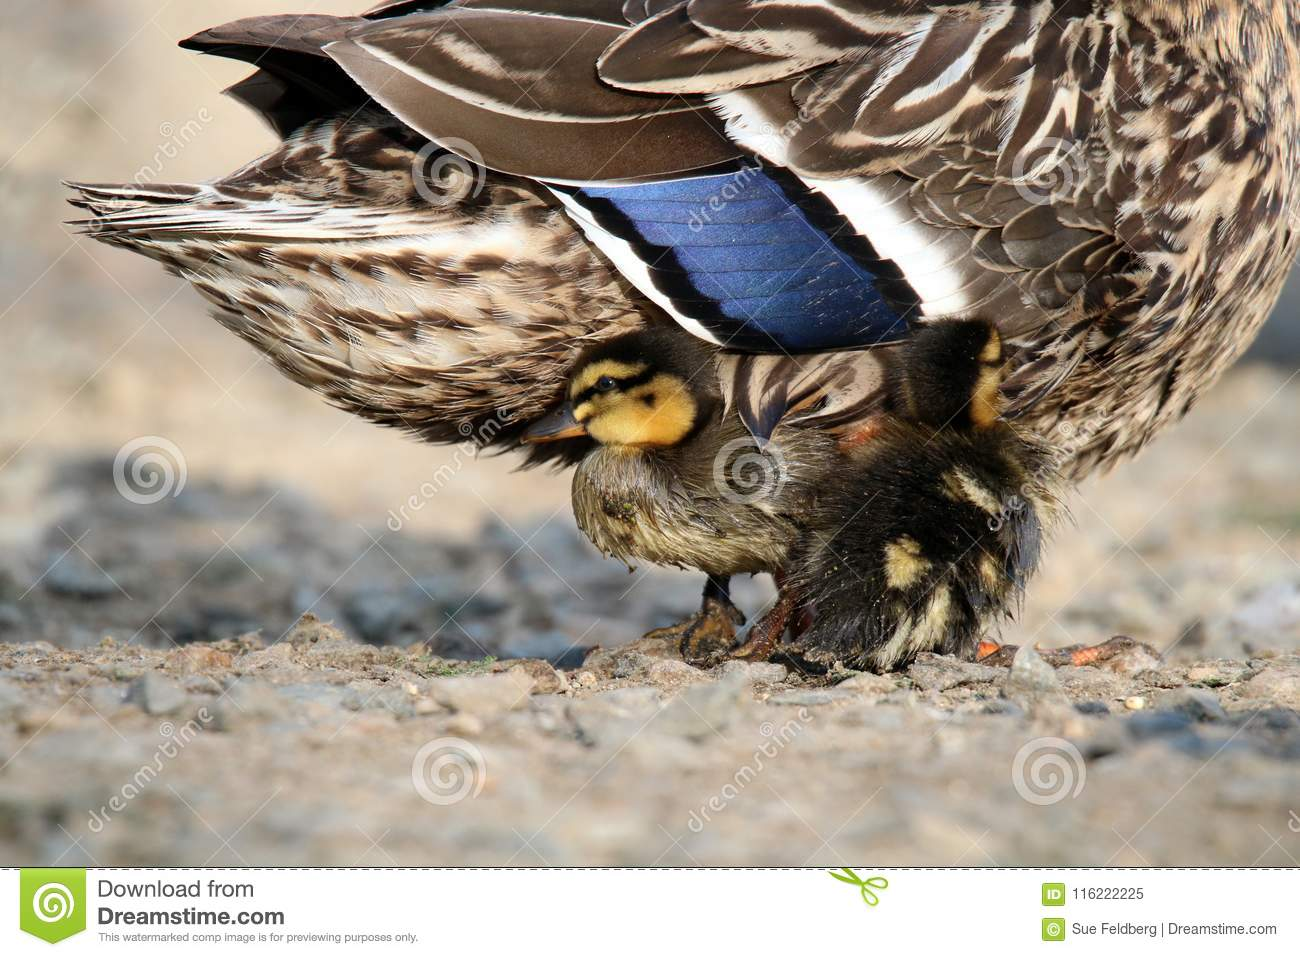 Download Duckling Snuggle stock image. Image of drying, protect - 116222225